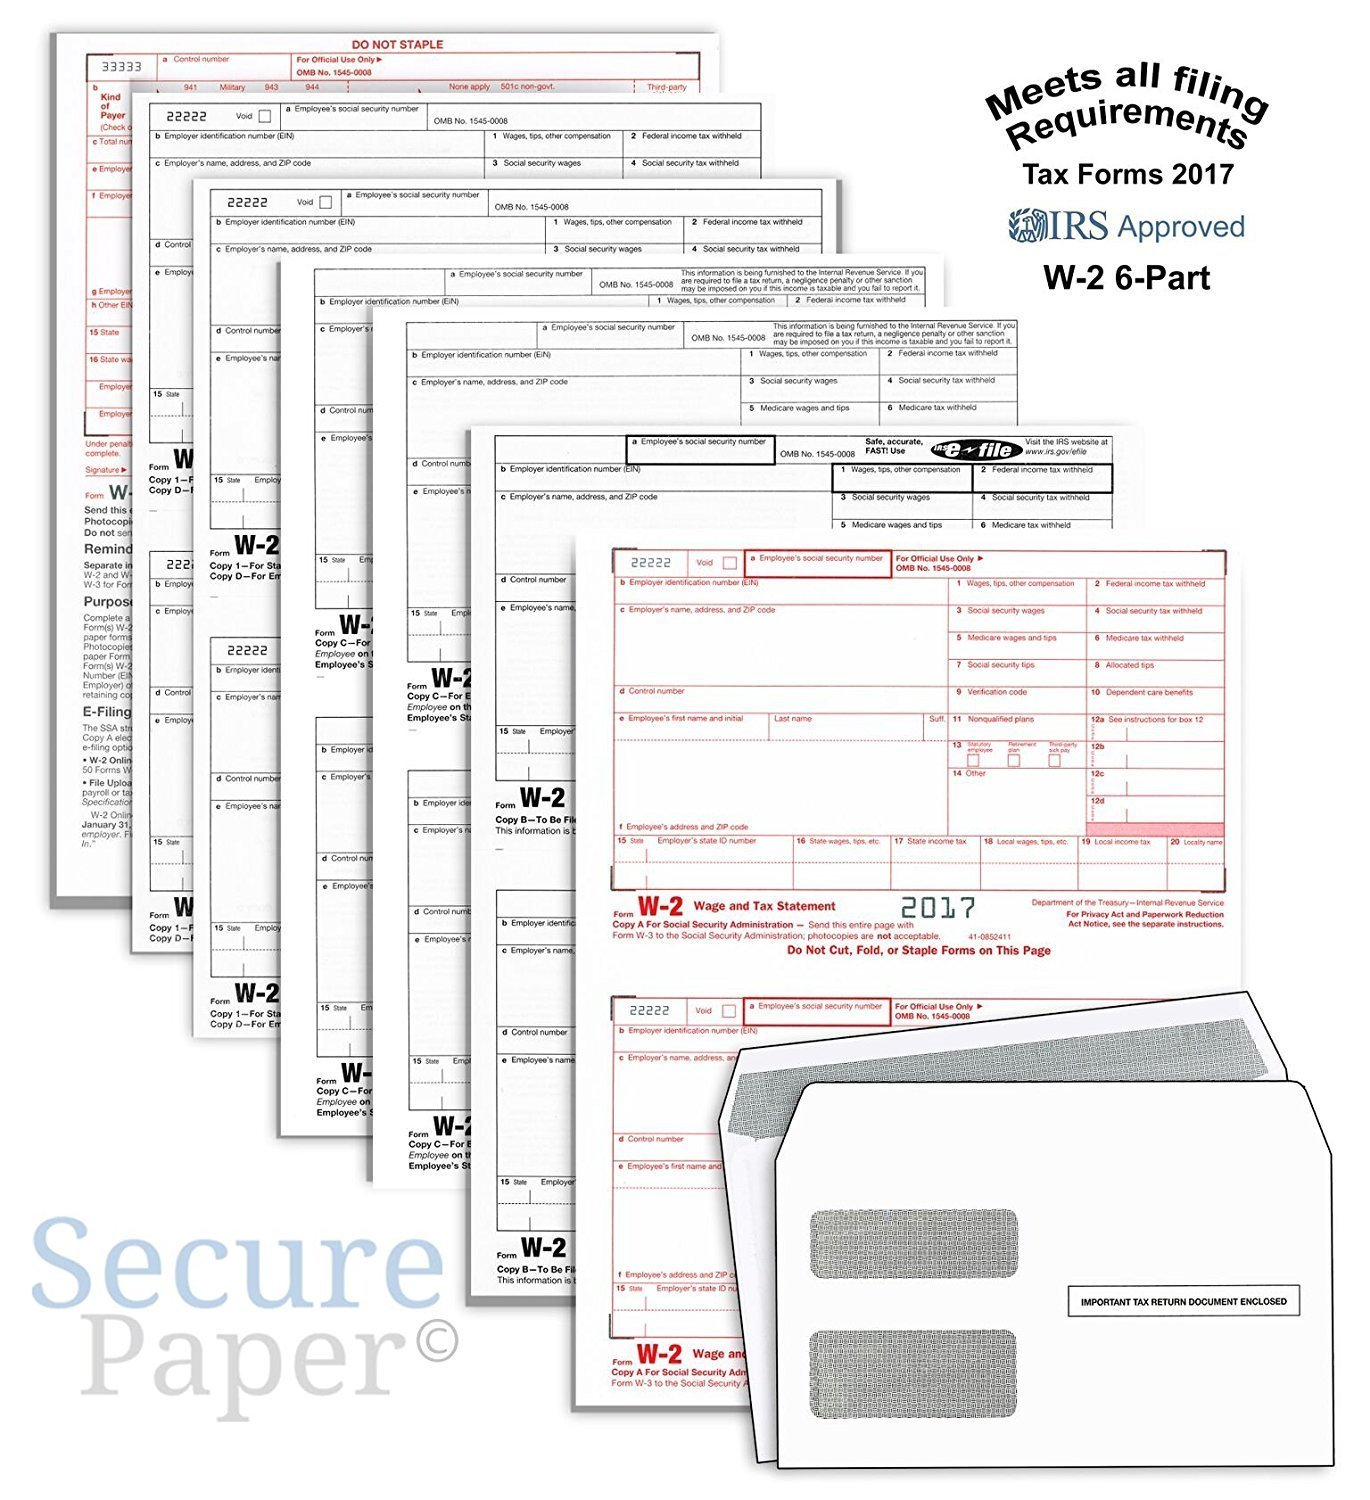 Complete Laser W-2 Tax Forms And W-3 Transmittal - Kit For 25 Employees ~6-Part~ All W-2 Forms with Self-Seal Envelopes in Value Pack | W-2 Forms 2017